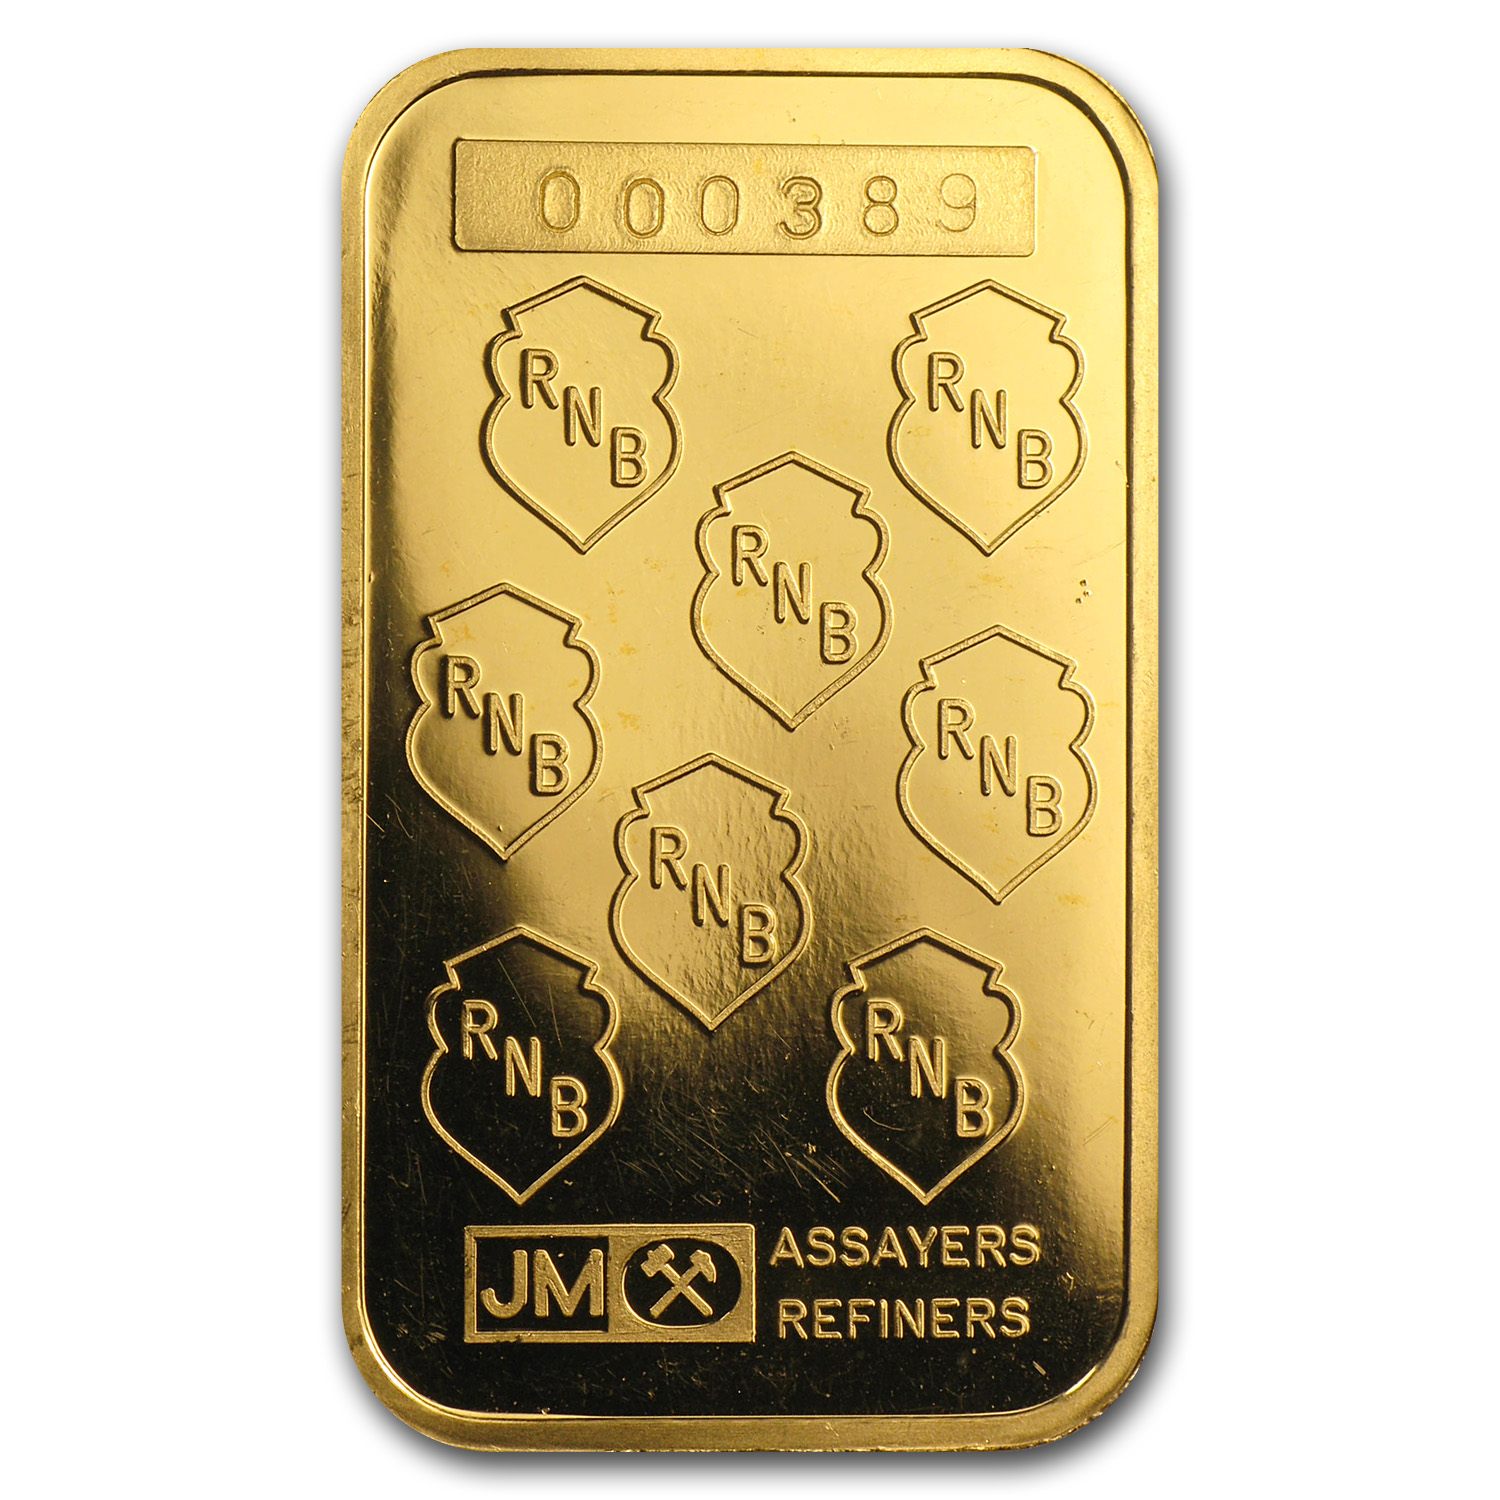 1/2 oz Gold Bar - Johnson Matthey (RNB)